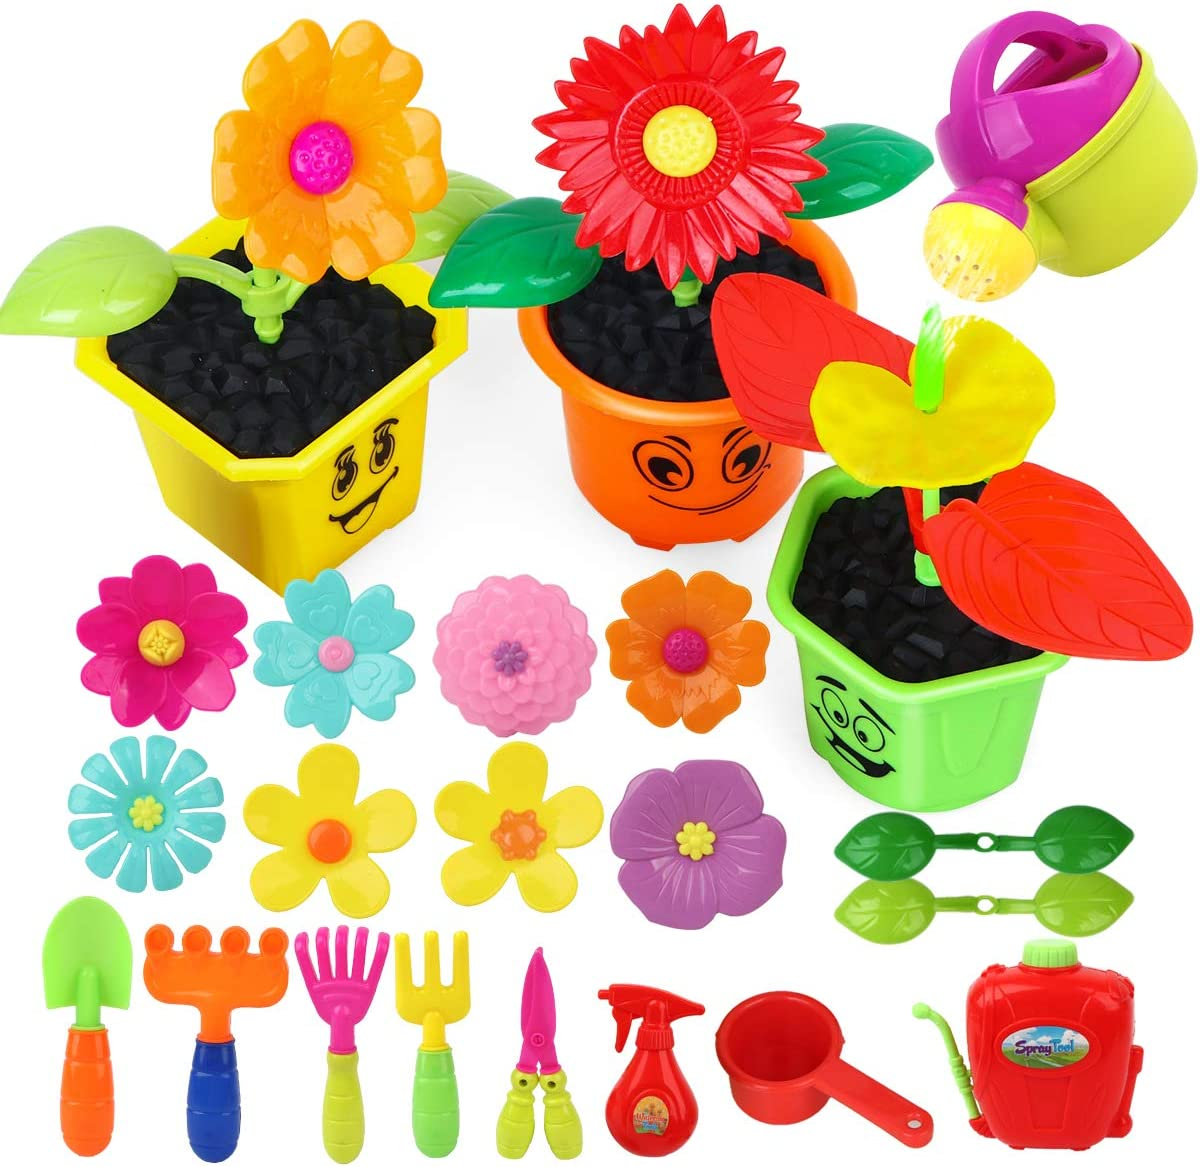 Vanmor Toddlers Pretend Gardening Toy Set- Little Gardeners Flower Building Toy for Babies & Kids STEM Garden Activity Playset Outdoor Gift for Girls and Boys Learn About Plant Grow (Color Random)